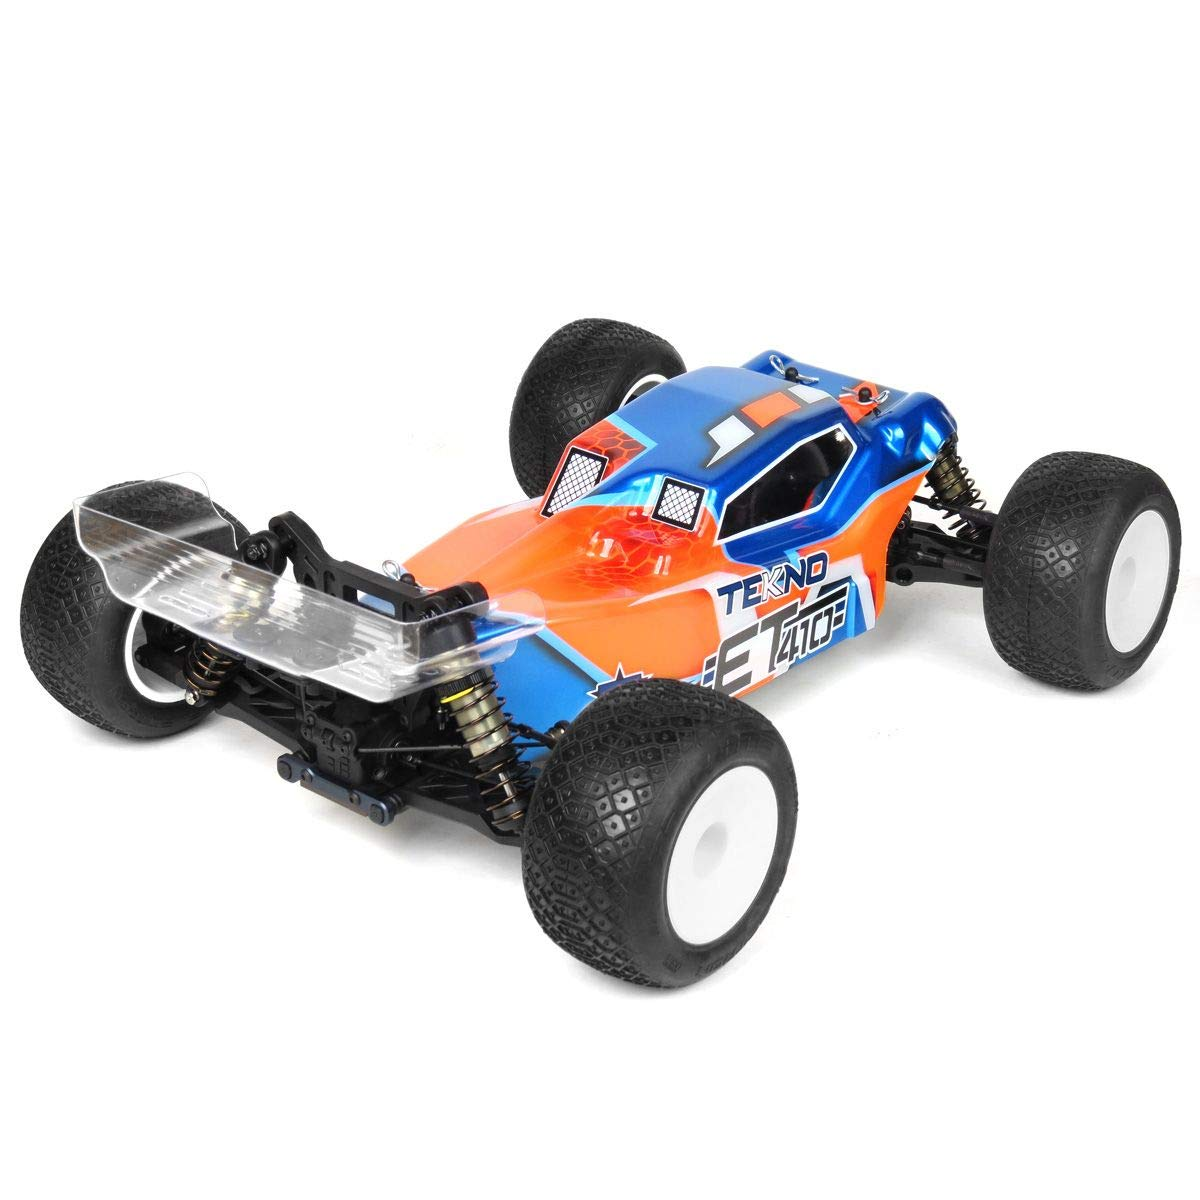 TEKNO RC LLC 1/10 ET410 4WD Competition Electric Truggy Kit, TKR7200